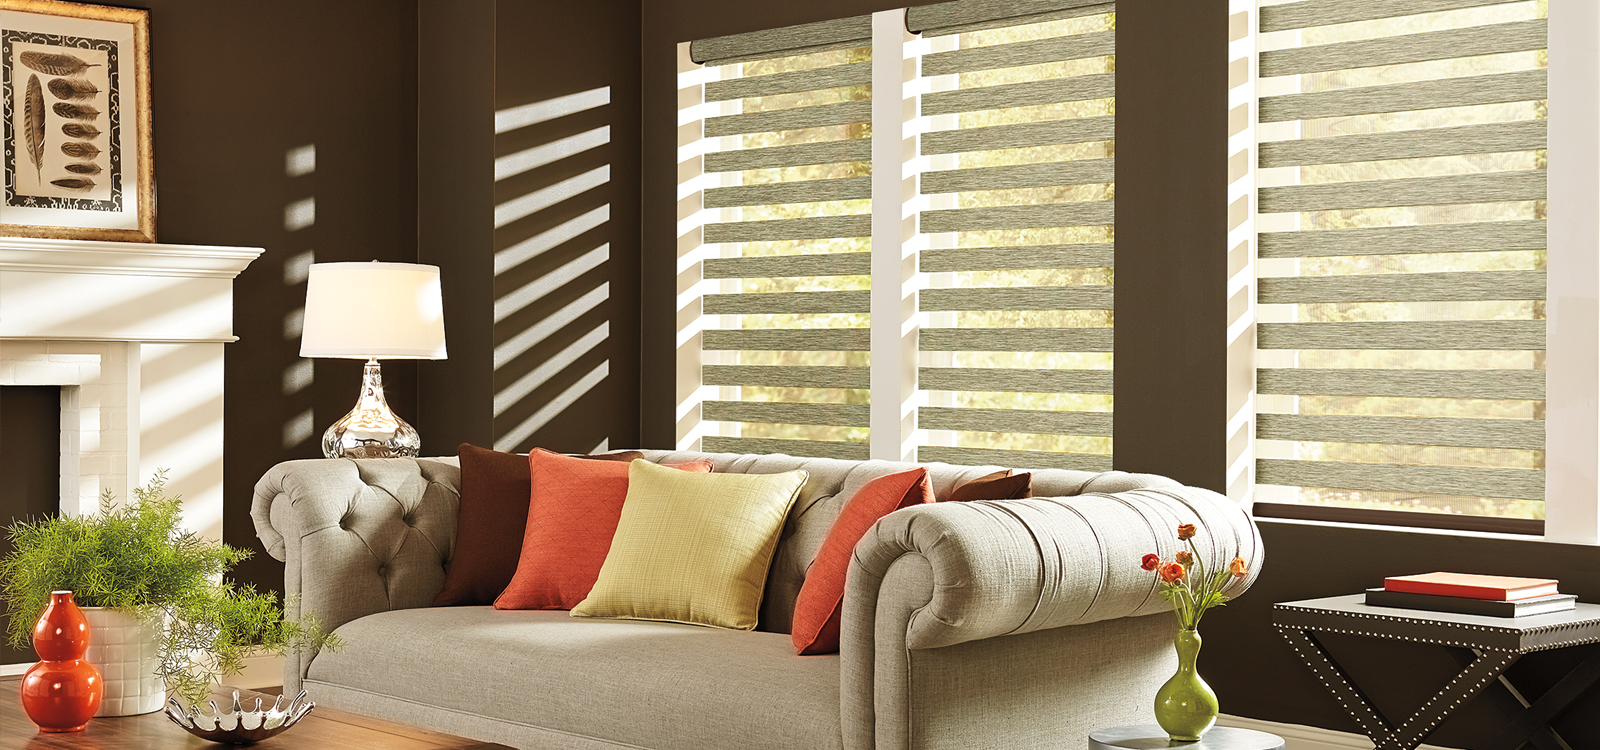 Graber Layered Shades Zblinds